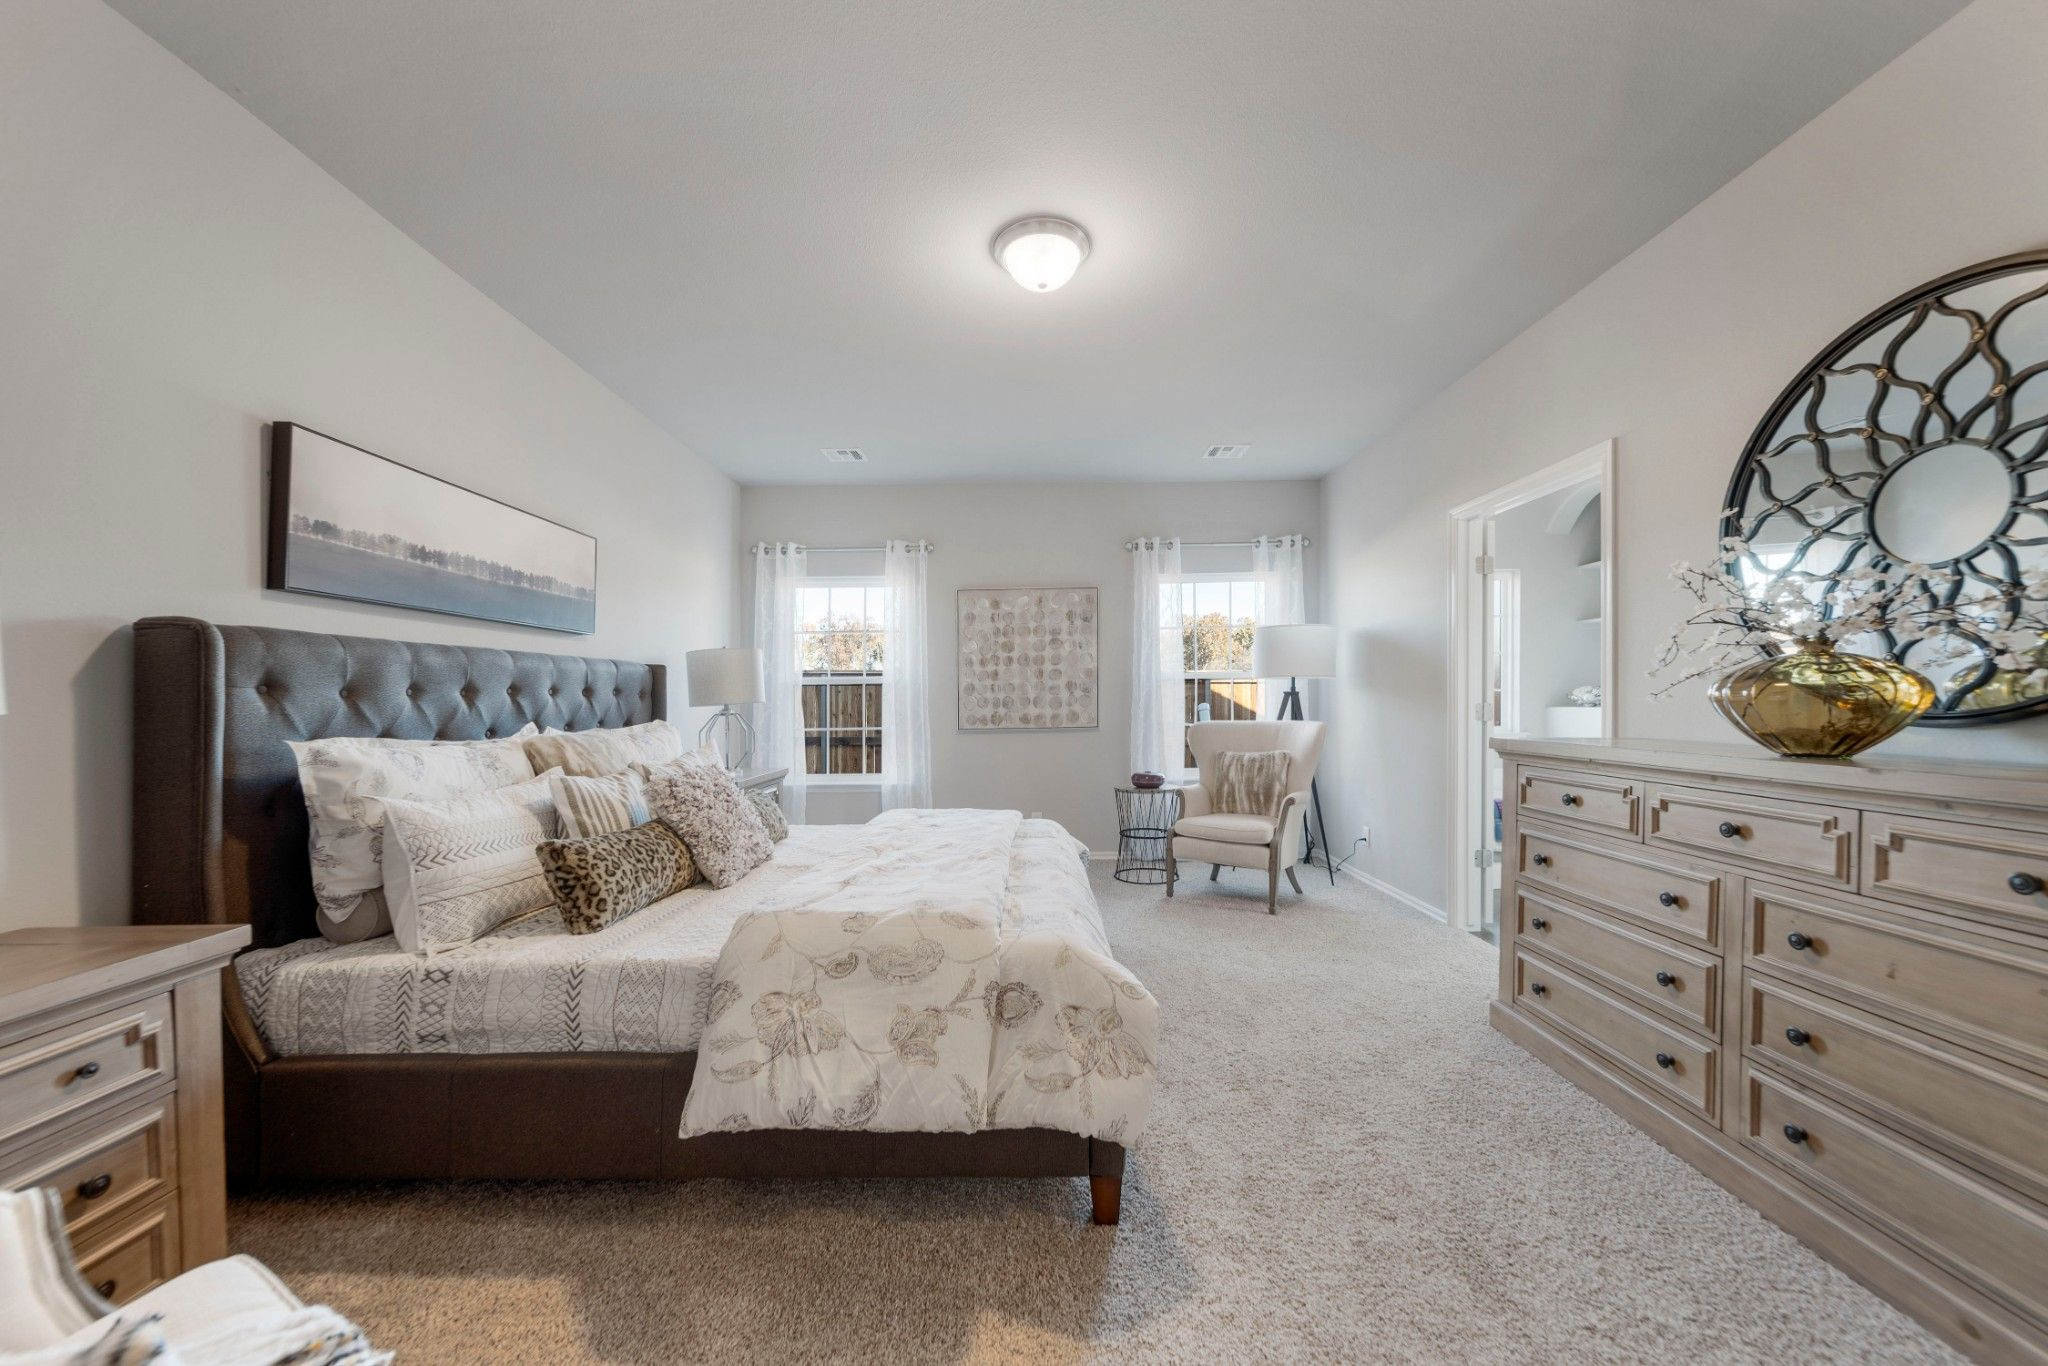 Bedroom featured in the Evergreen By Capital Homes in Tulsa, OK